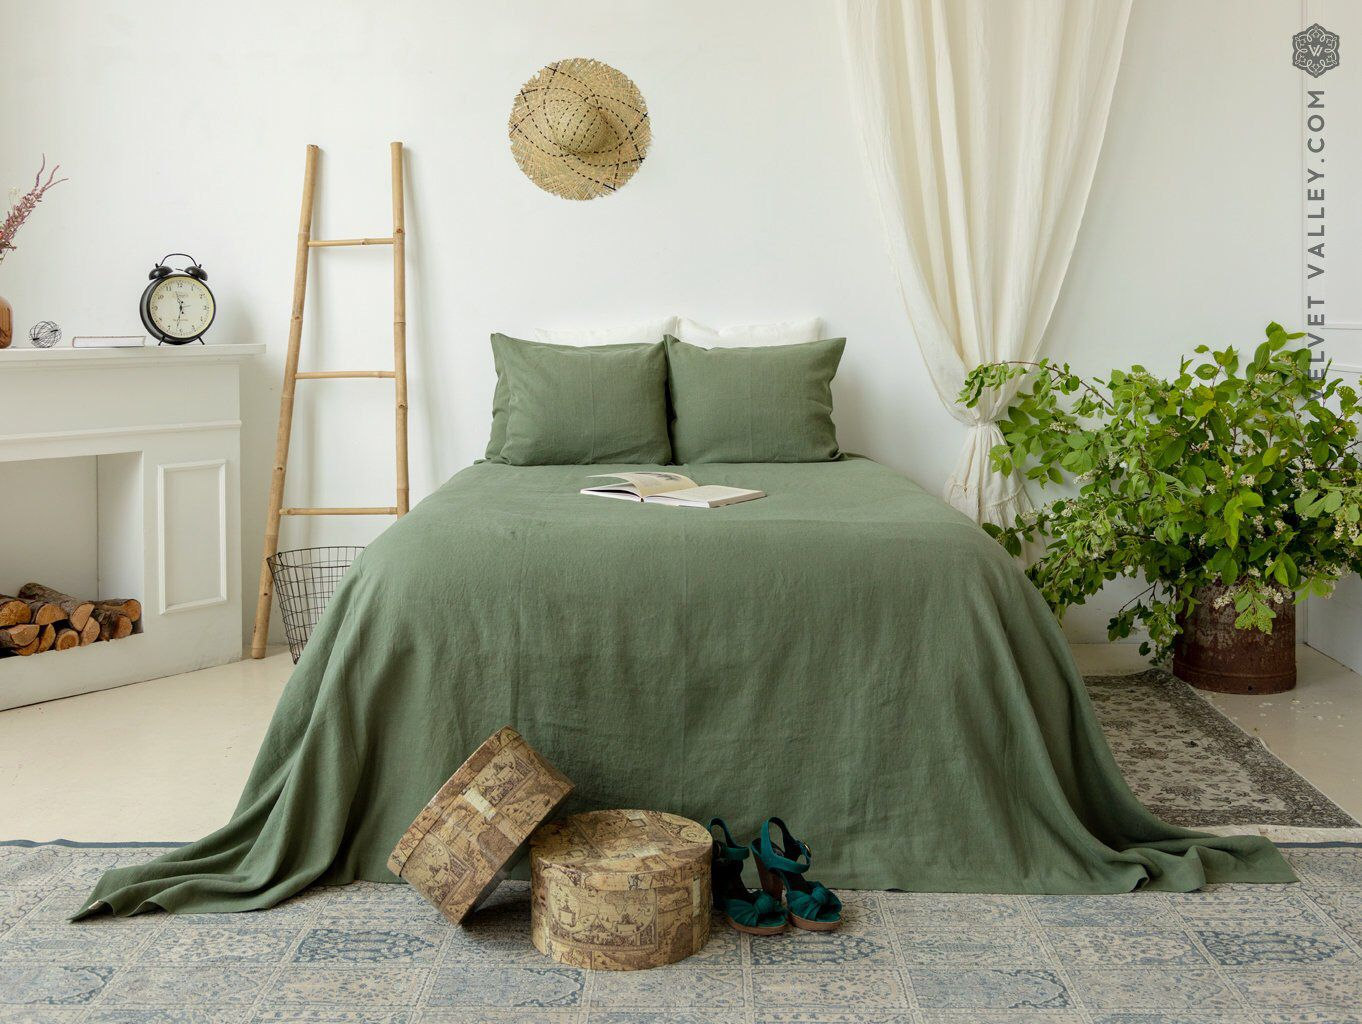 Moss Green Linen Bedspread Olive Green King Queen Size Bed Etsy Olive Green Bedrooms Sage Green Bedroom Green Rooms